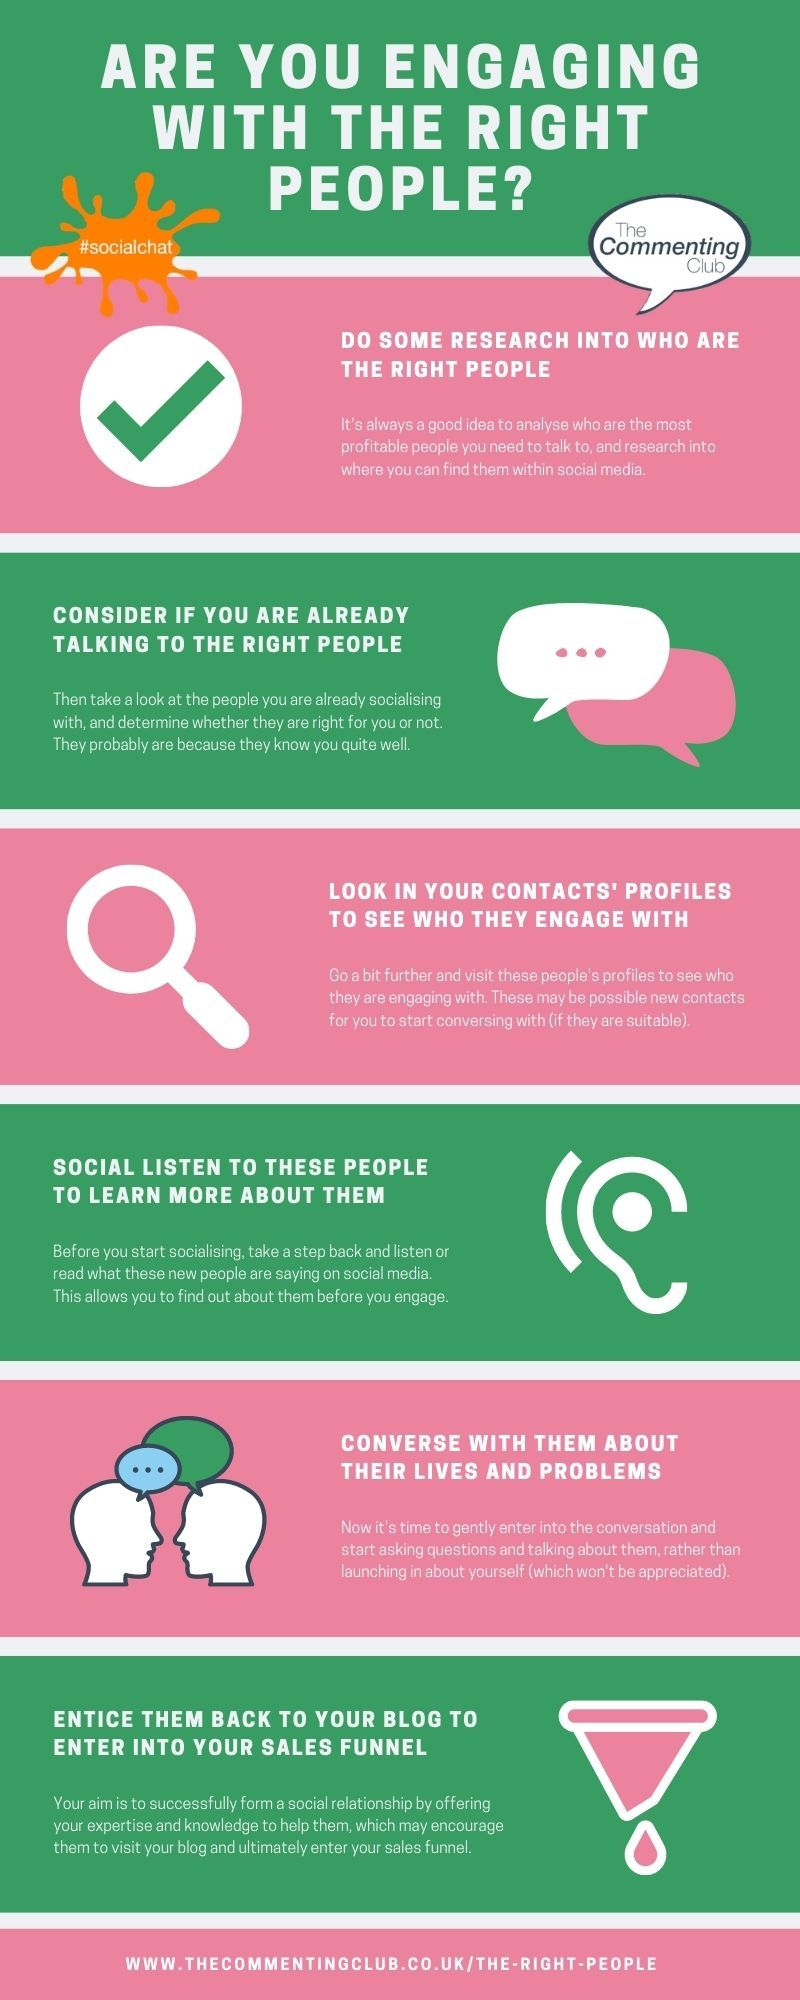 Are you engaging with the right people?